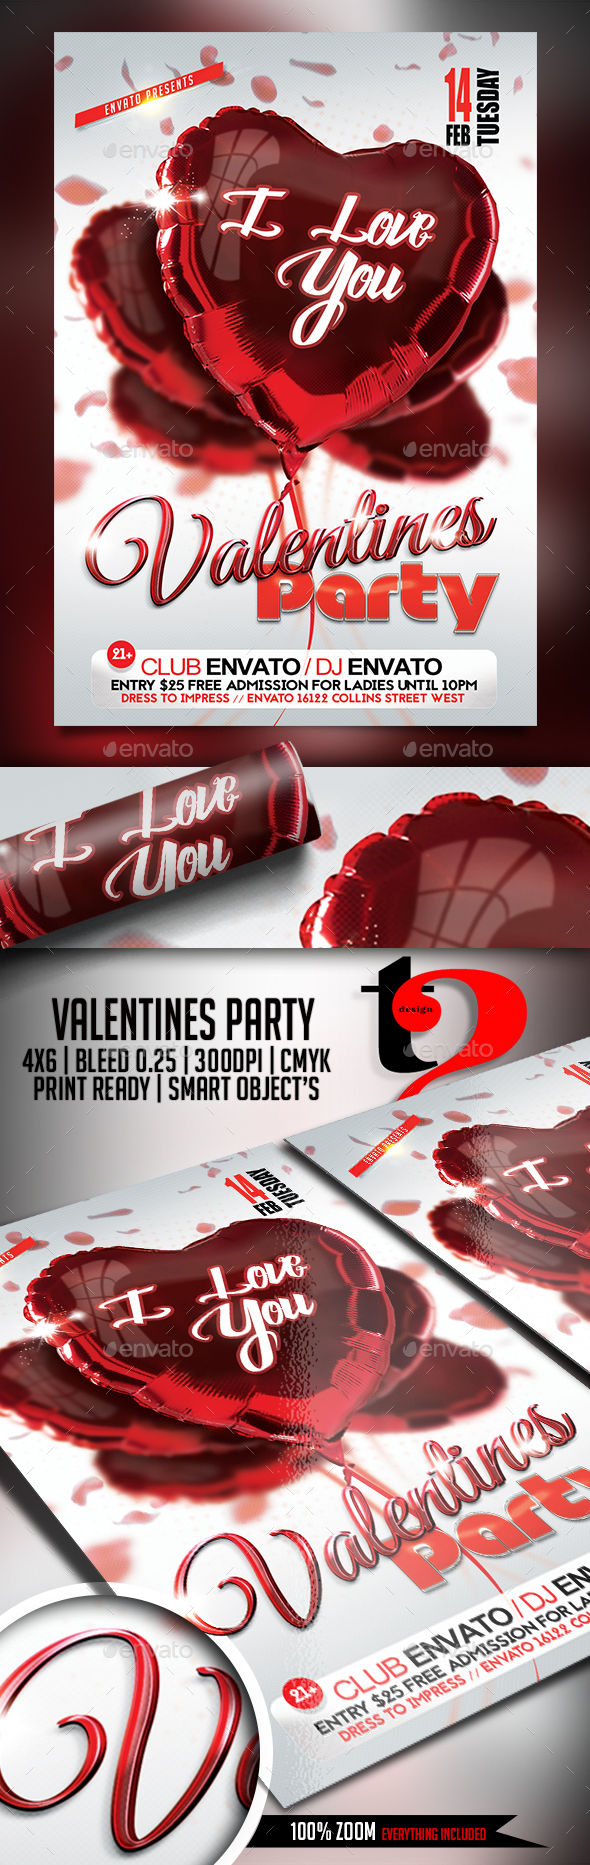 Valentines Party Flyer - Template - Clubs & Parties Events